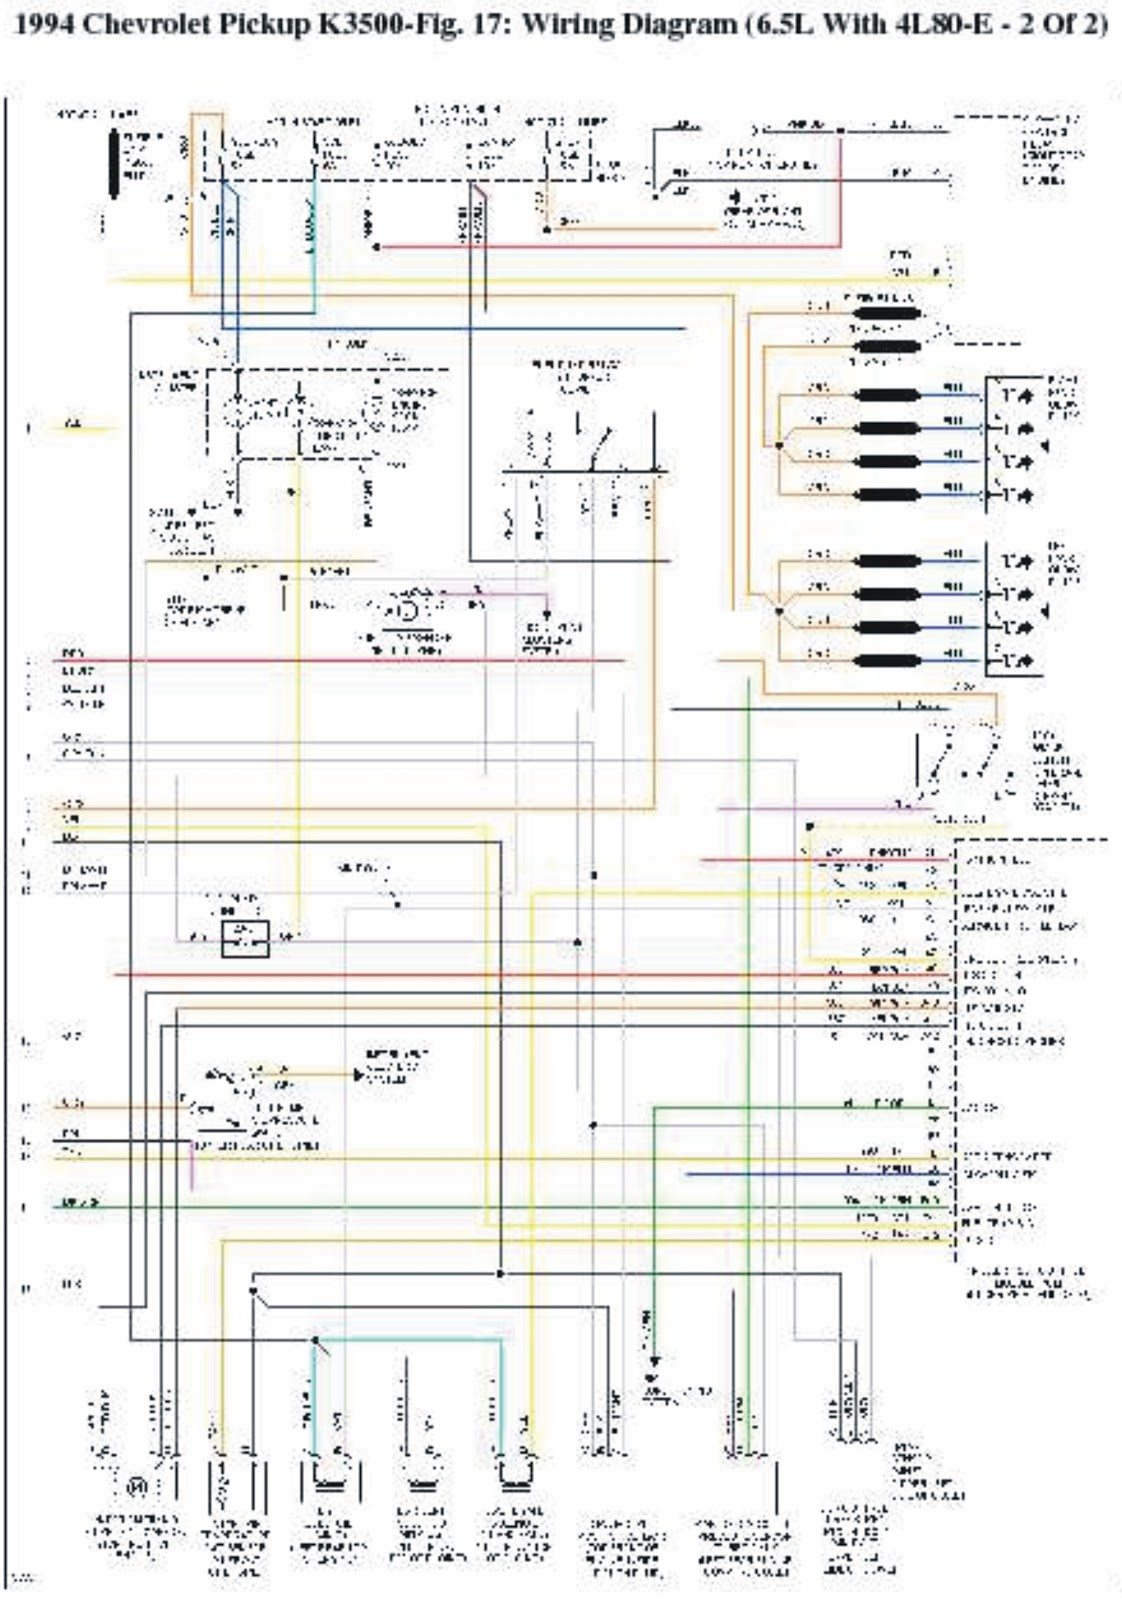 1994+chevrolet+pick+up+K3500%25232 1994 mustang wiring diagram 1994 ford mustang wiring diagram 1994 chevy silverado wiring diagram at bakdesigns.co